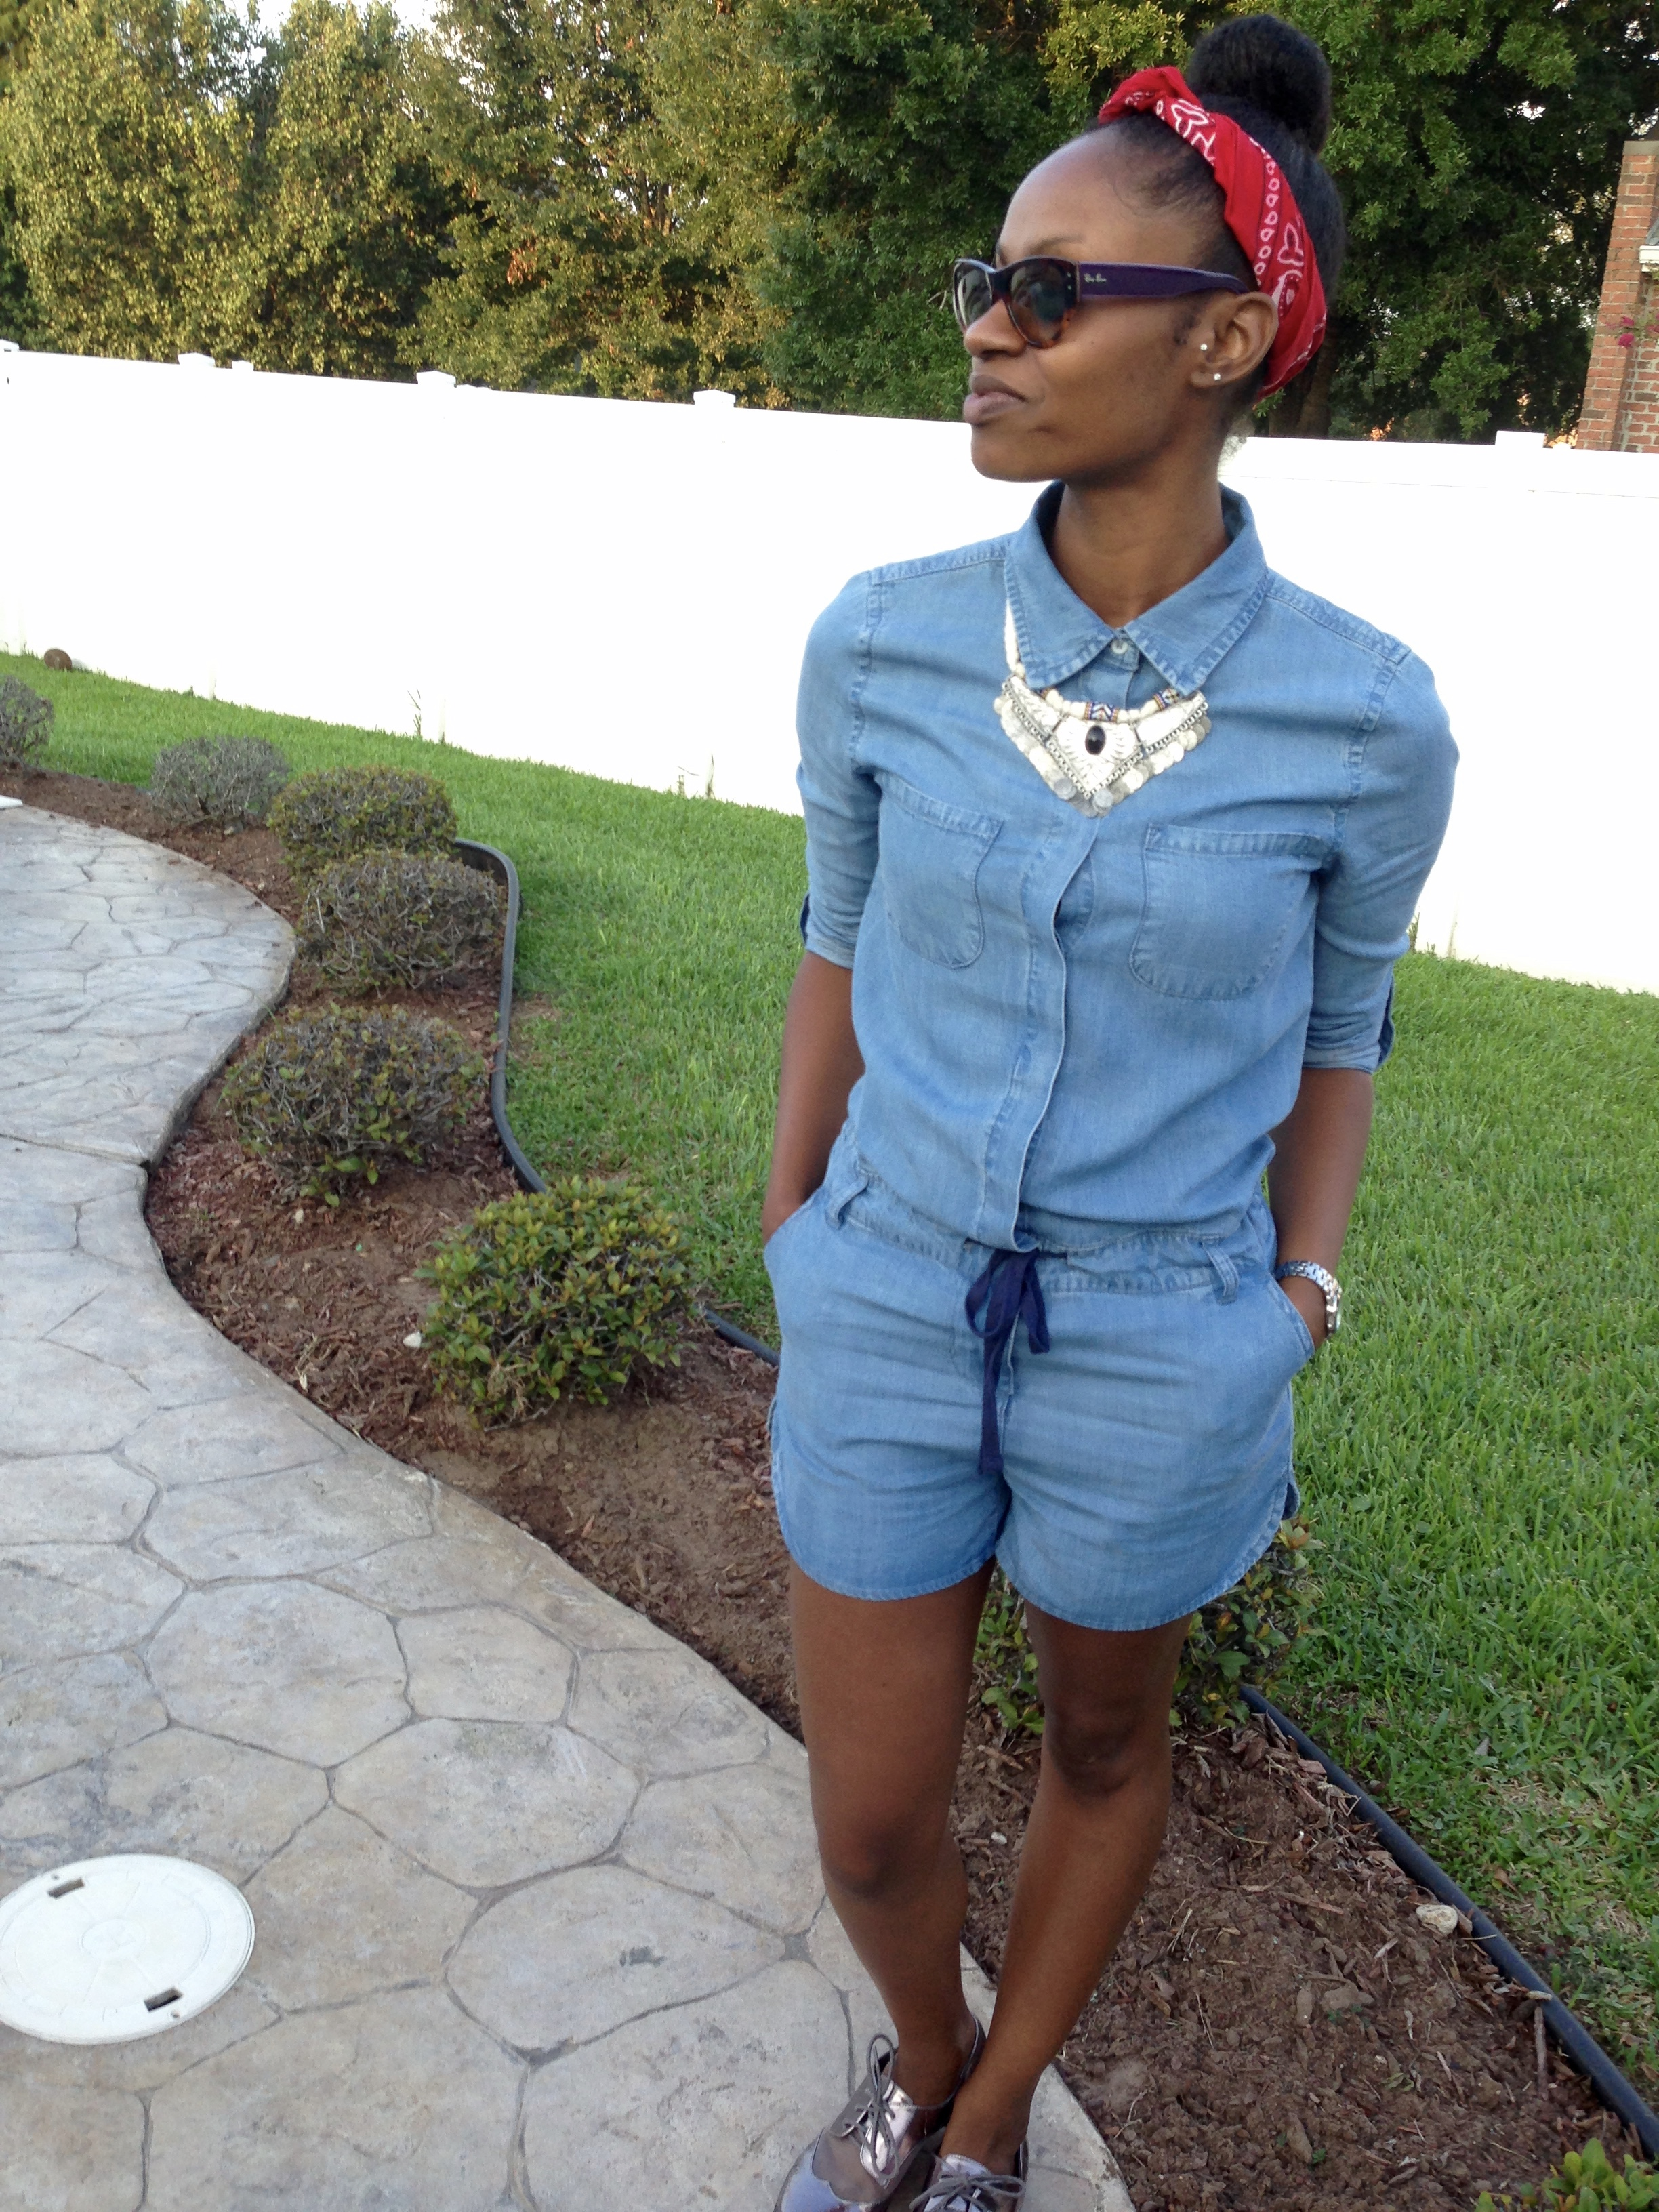 denim romper outfits for non-shoppers and busy shoppers